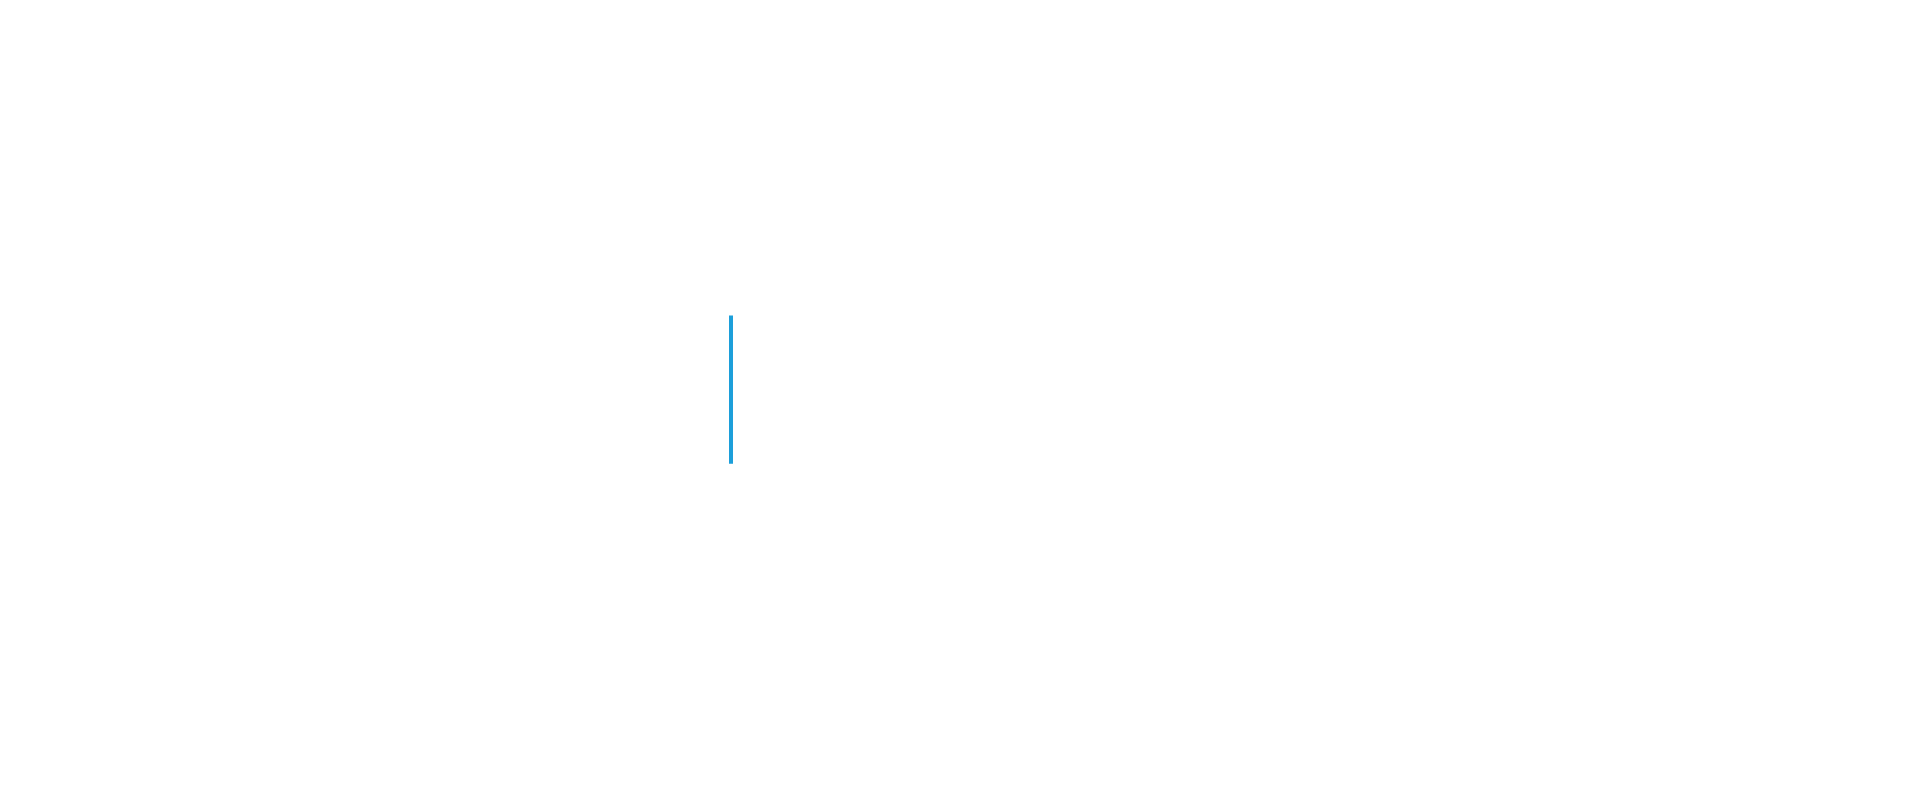 Welcome_Houston